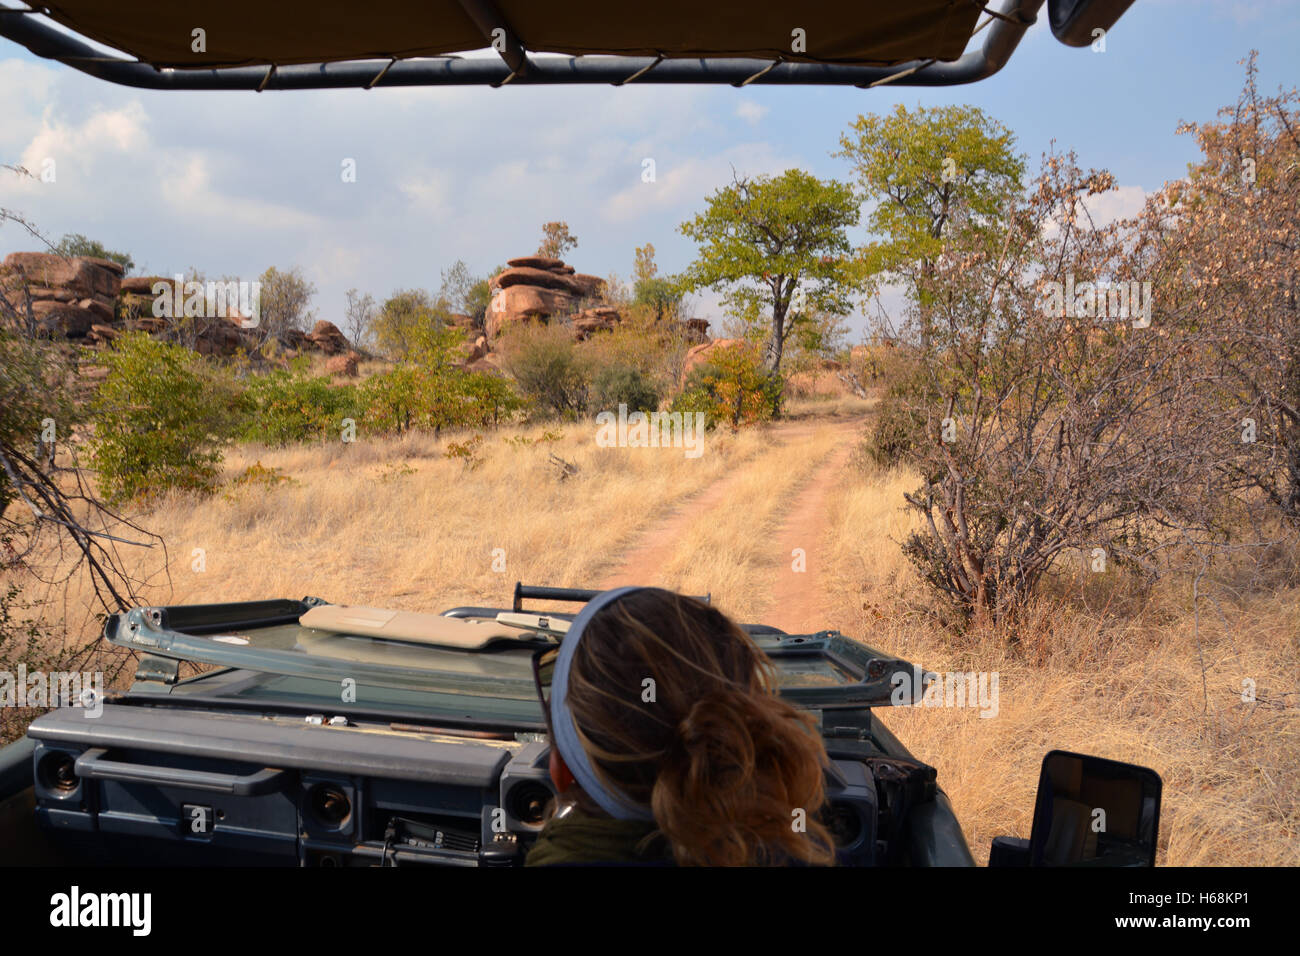 A guide maneuvers her safari jeep past kopje formations in the bush of Botswana's Tuli Wilderness region. - Stock Image